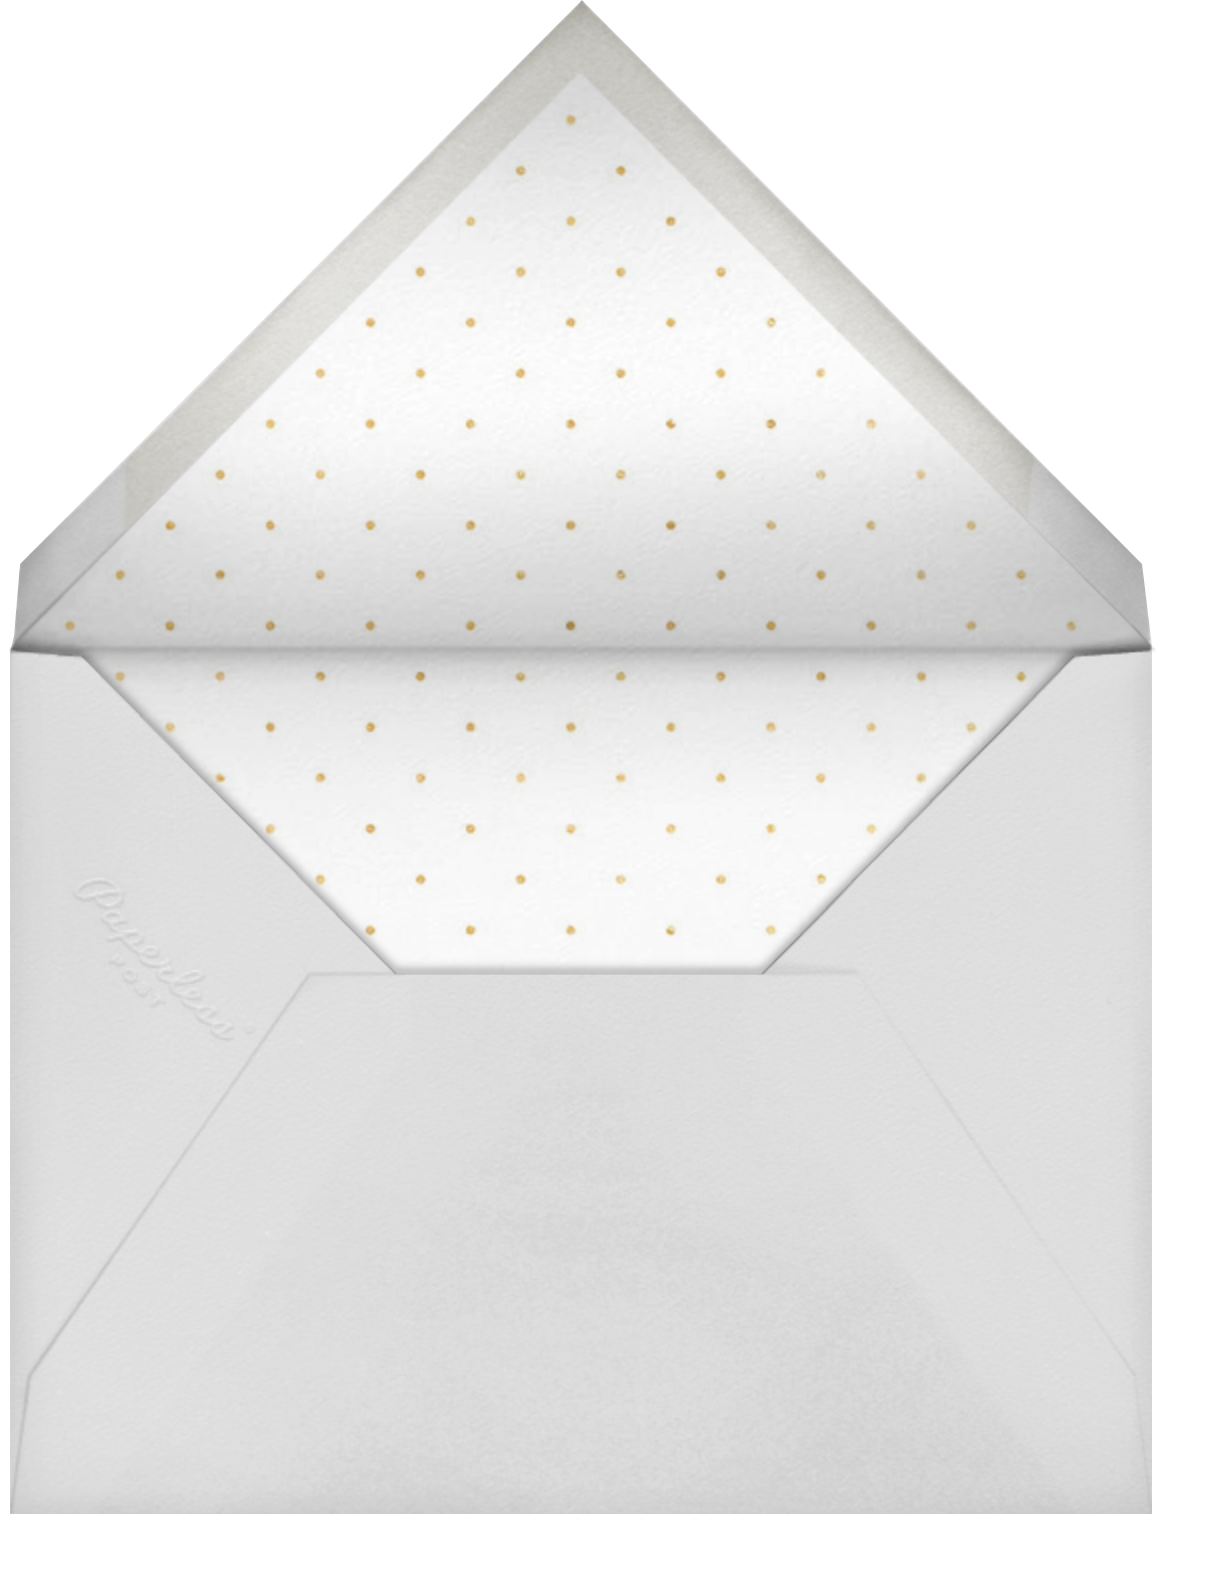 Simply the Best - Sugar Paper - Graduation party - envelope back